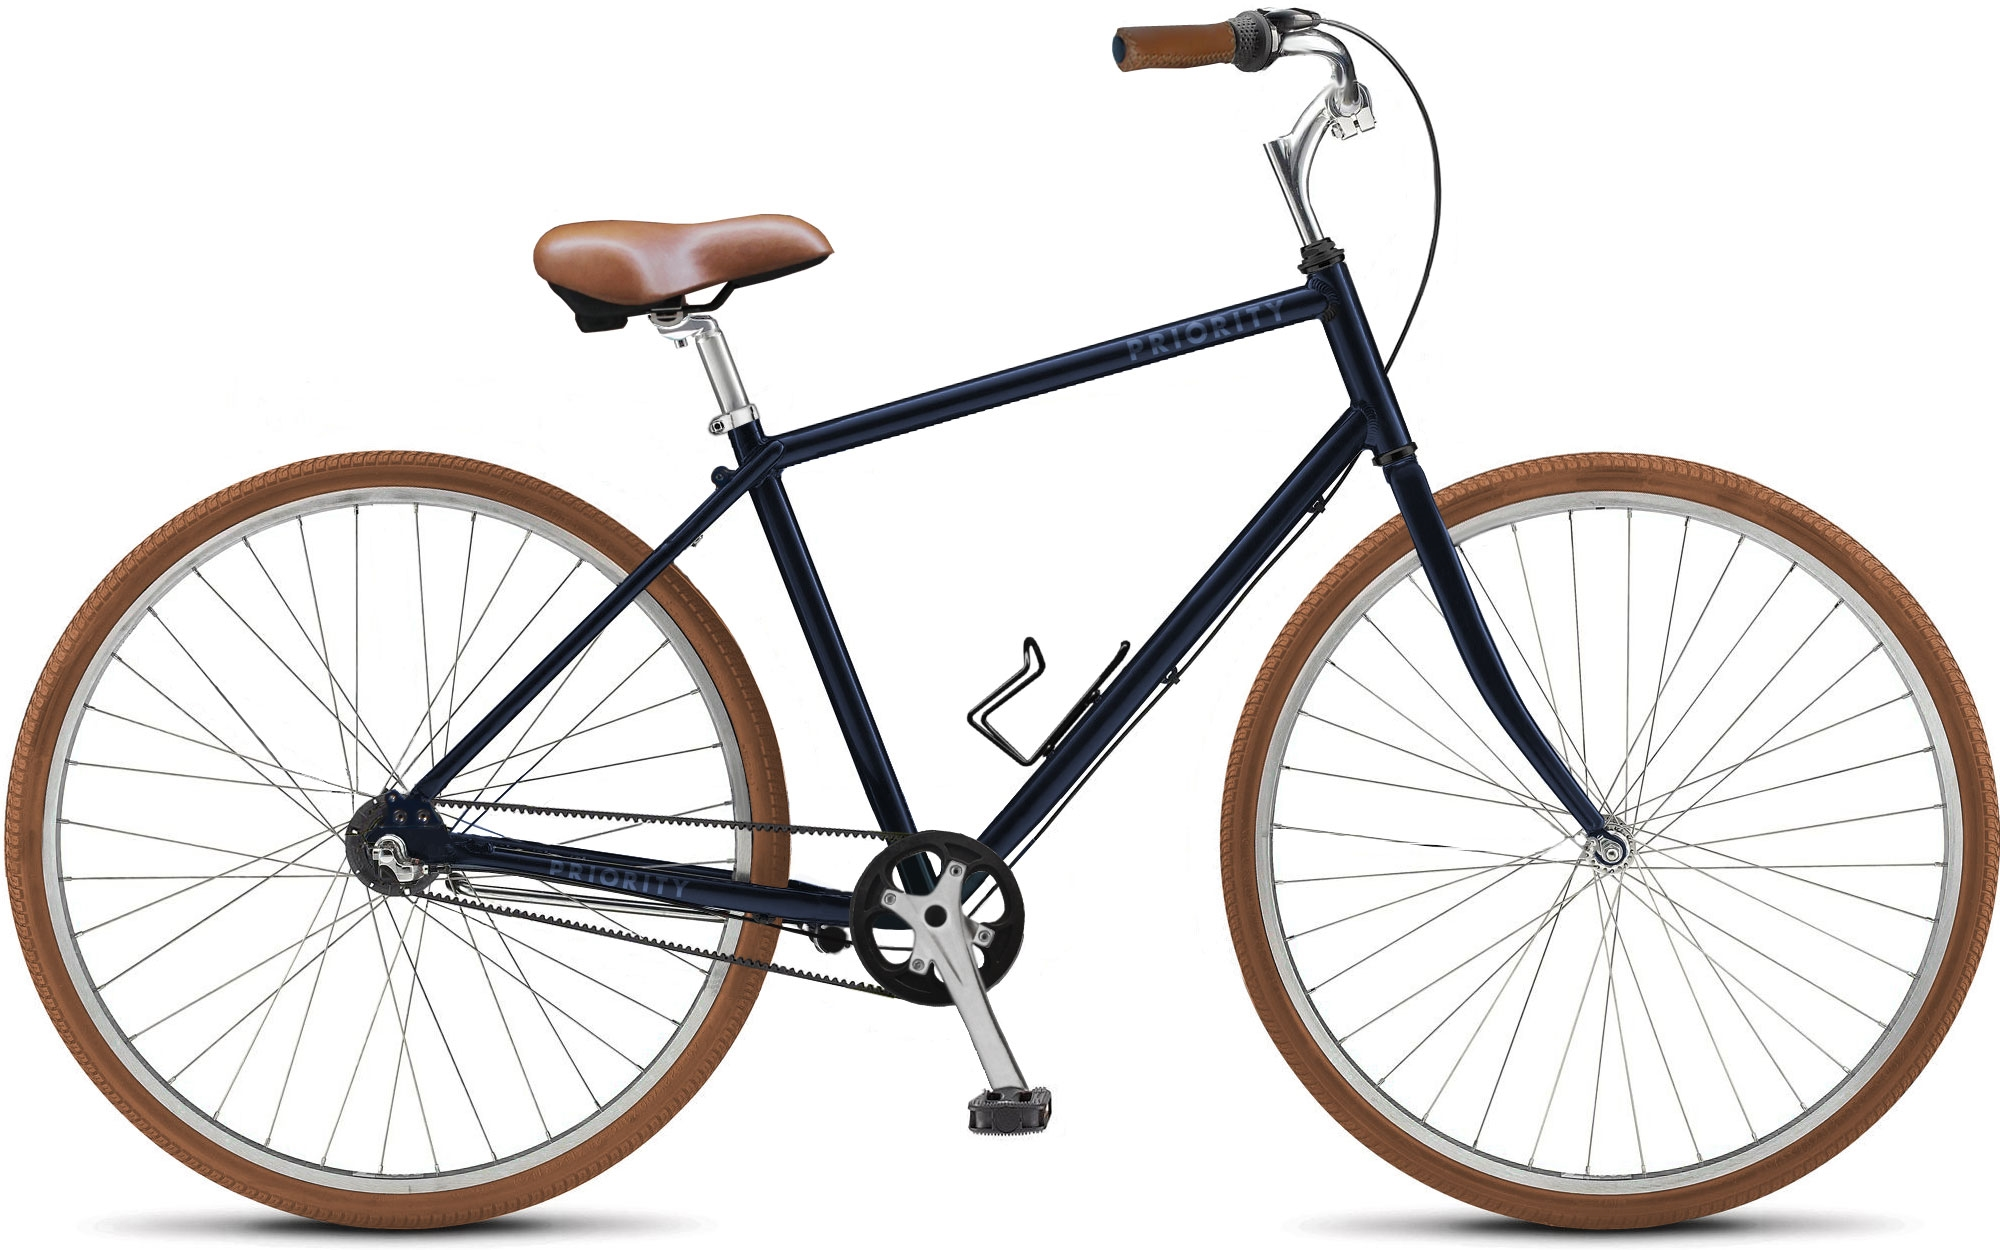 Priority Bicycles Classic Diamond Frame, $430